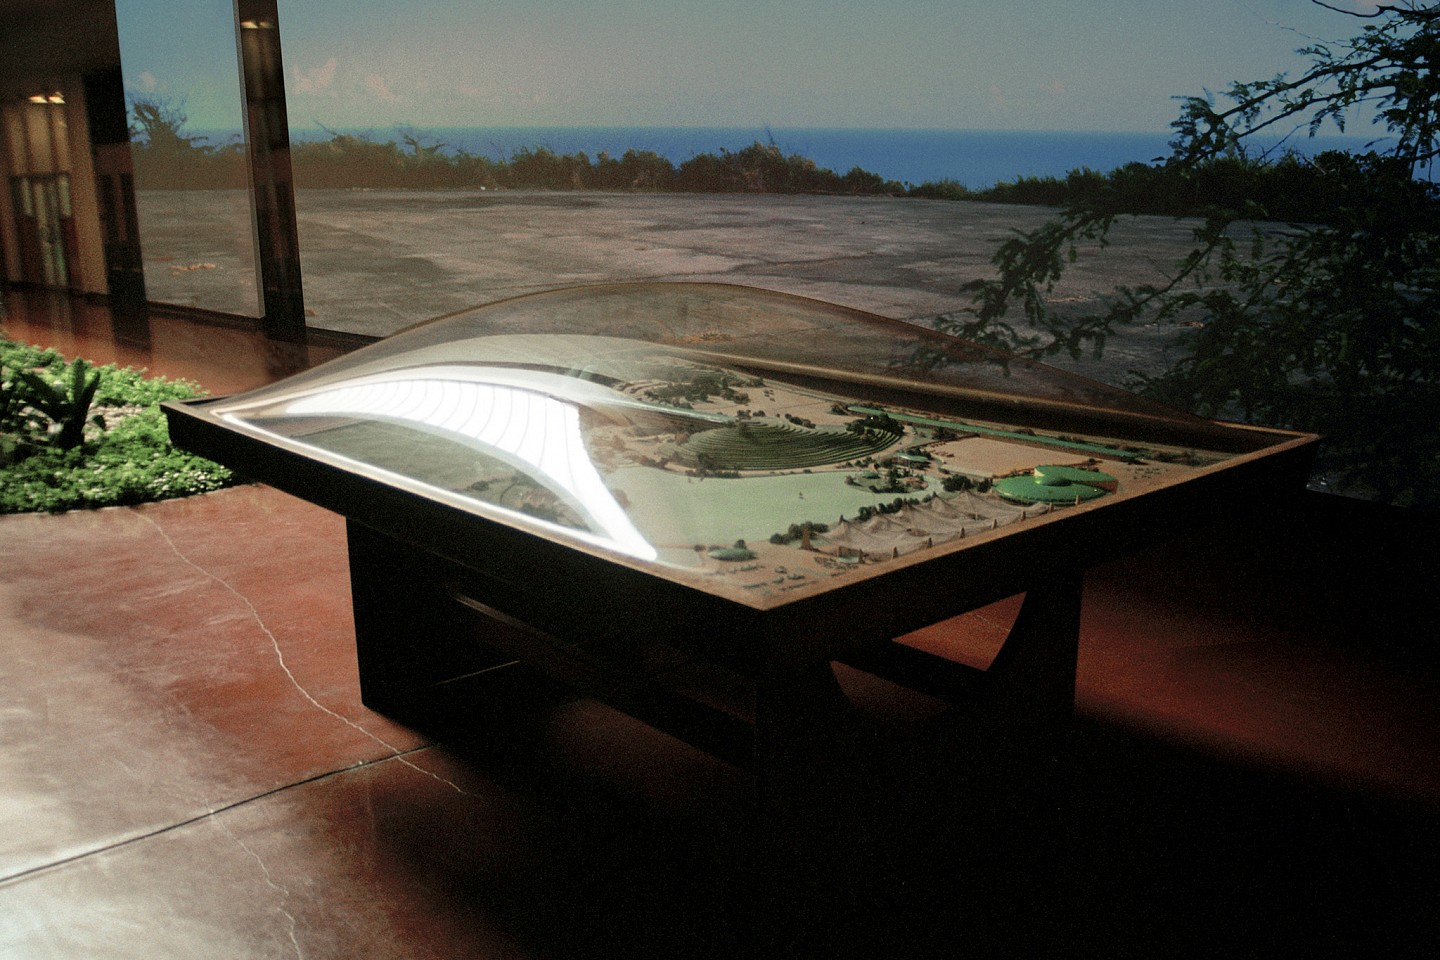 Oliver Wasow, Marin County Convention Center Model 2001, Archival inkjet